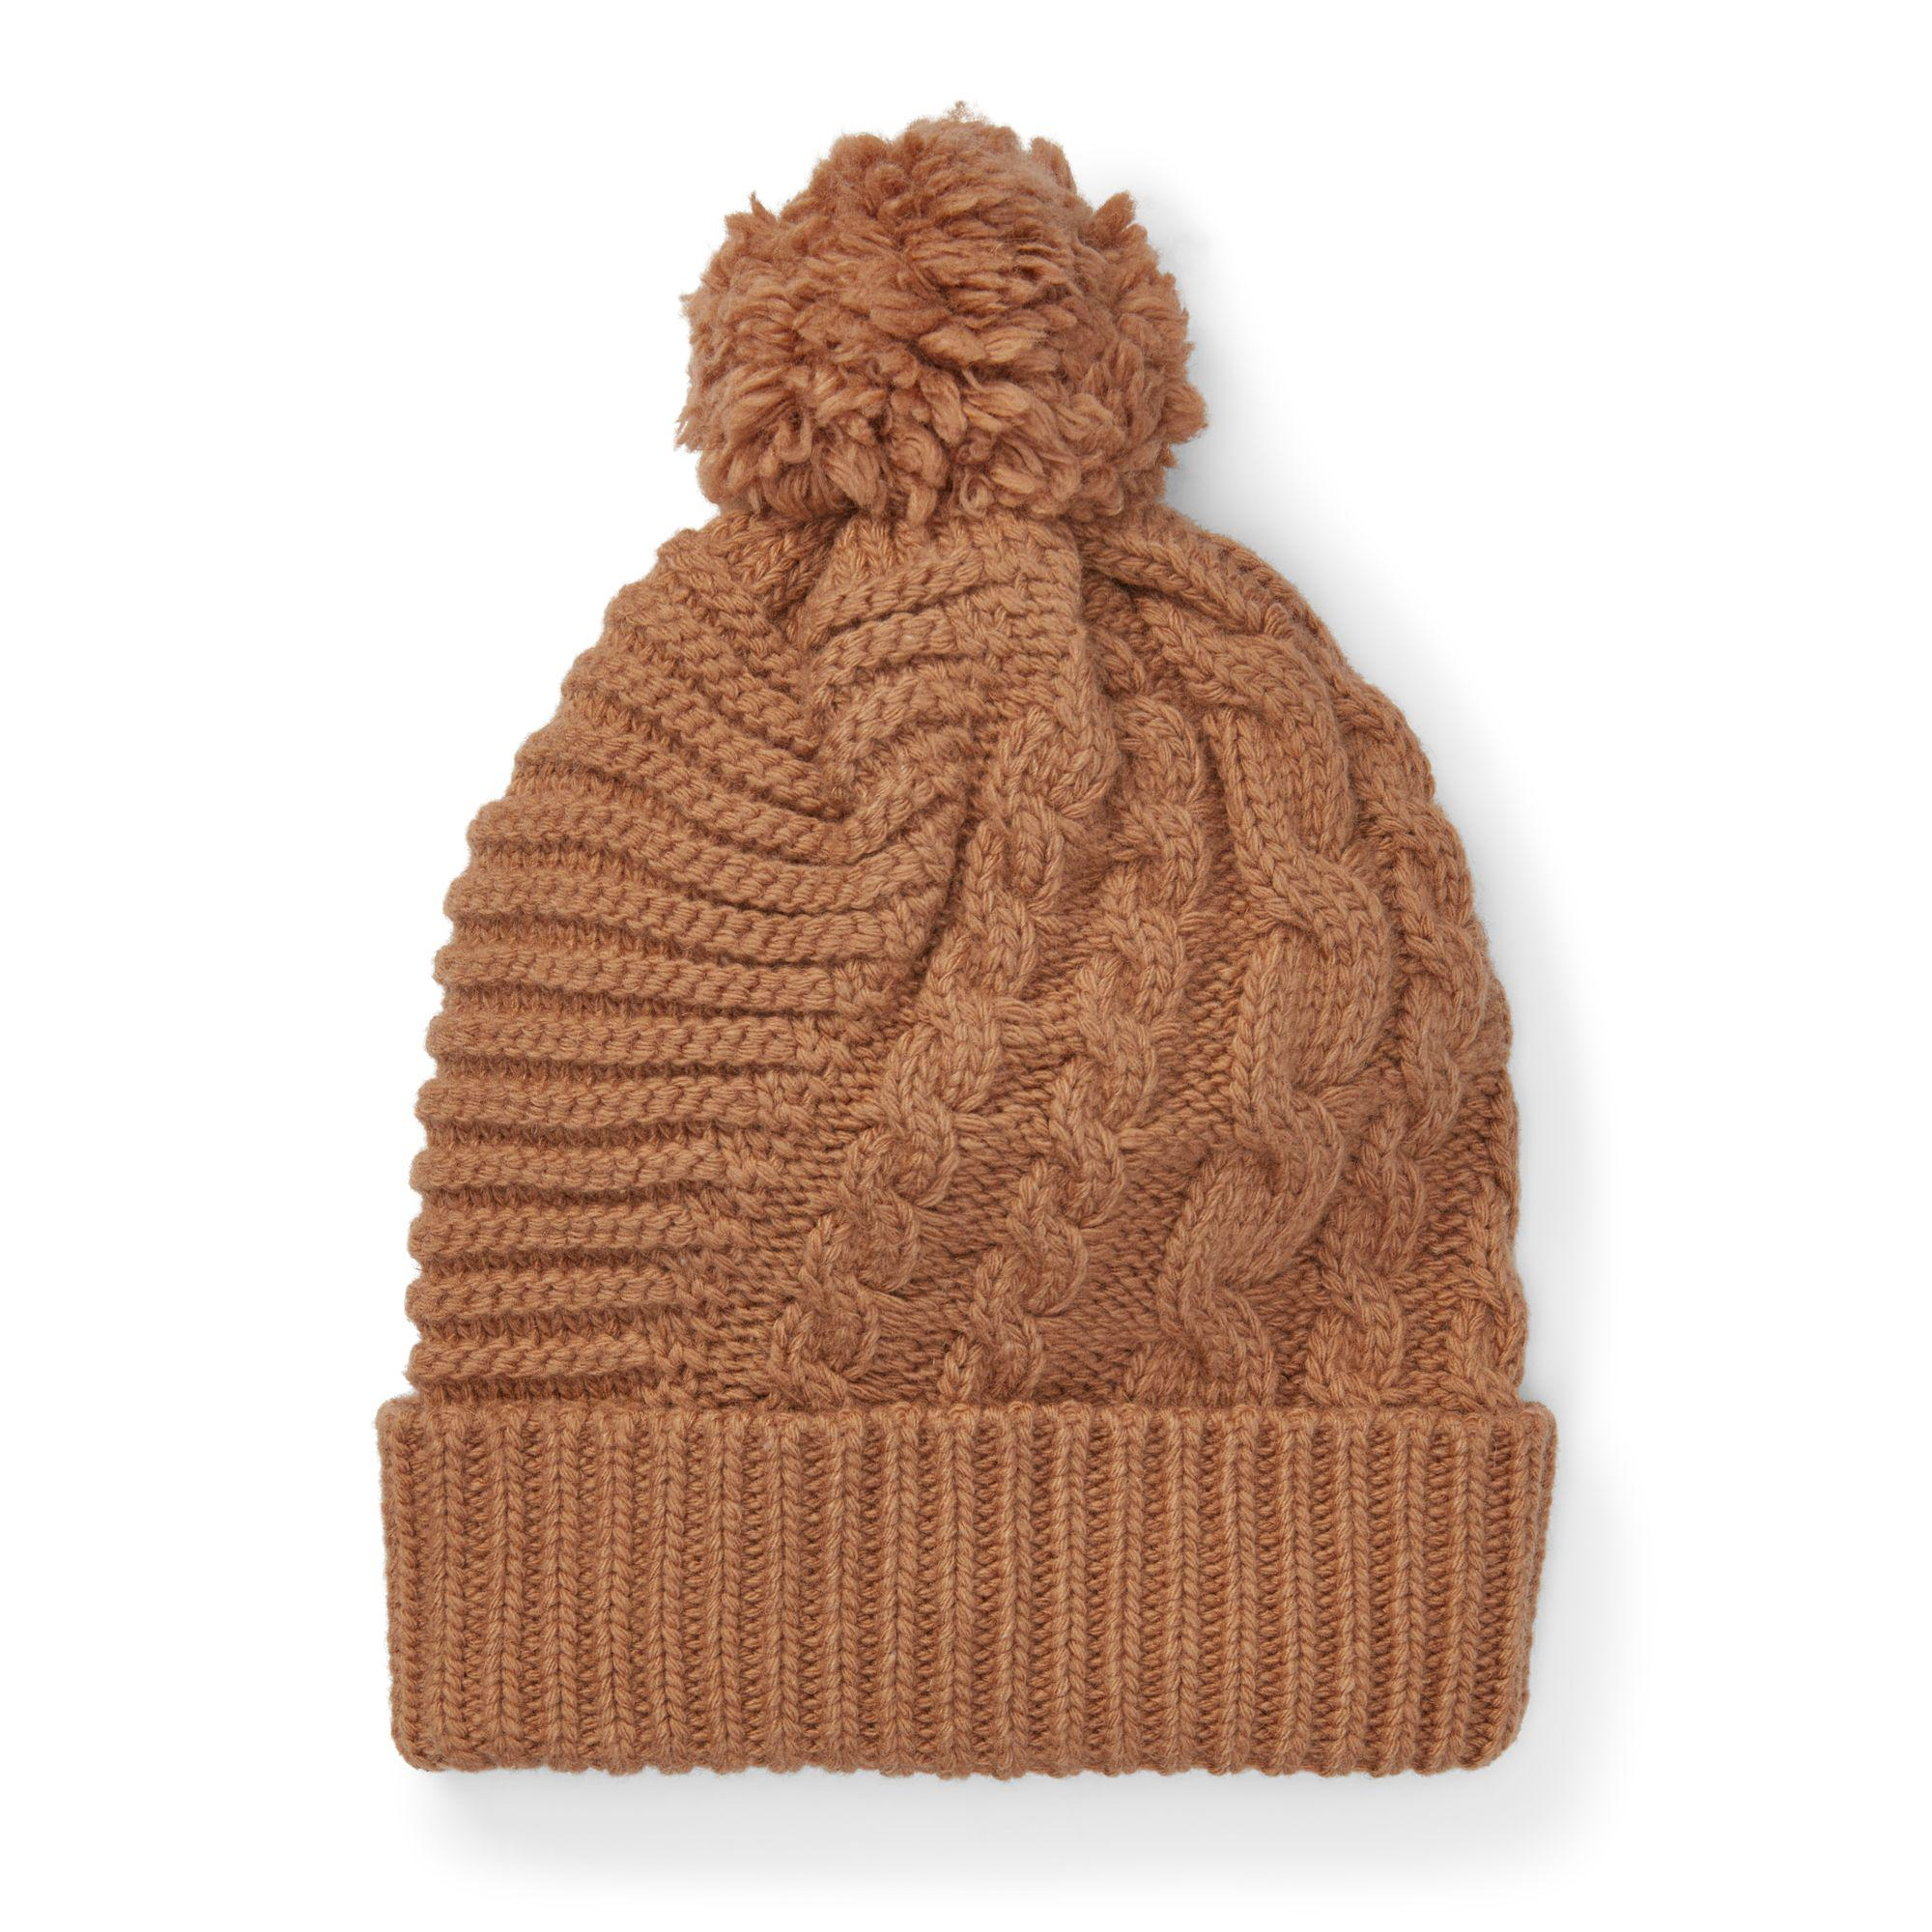 c20ad8bec43345 Lyst - Polo Ralph Lauren Pom-pom Cable-knit Hat in Brown